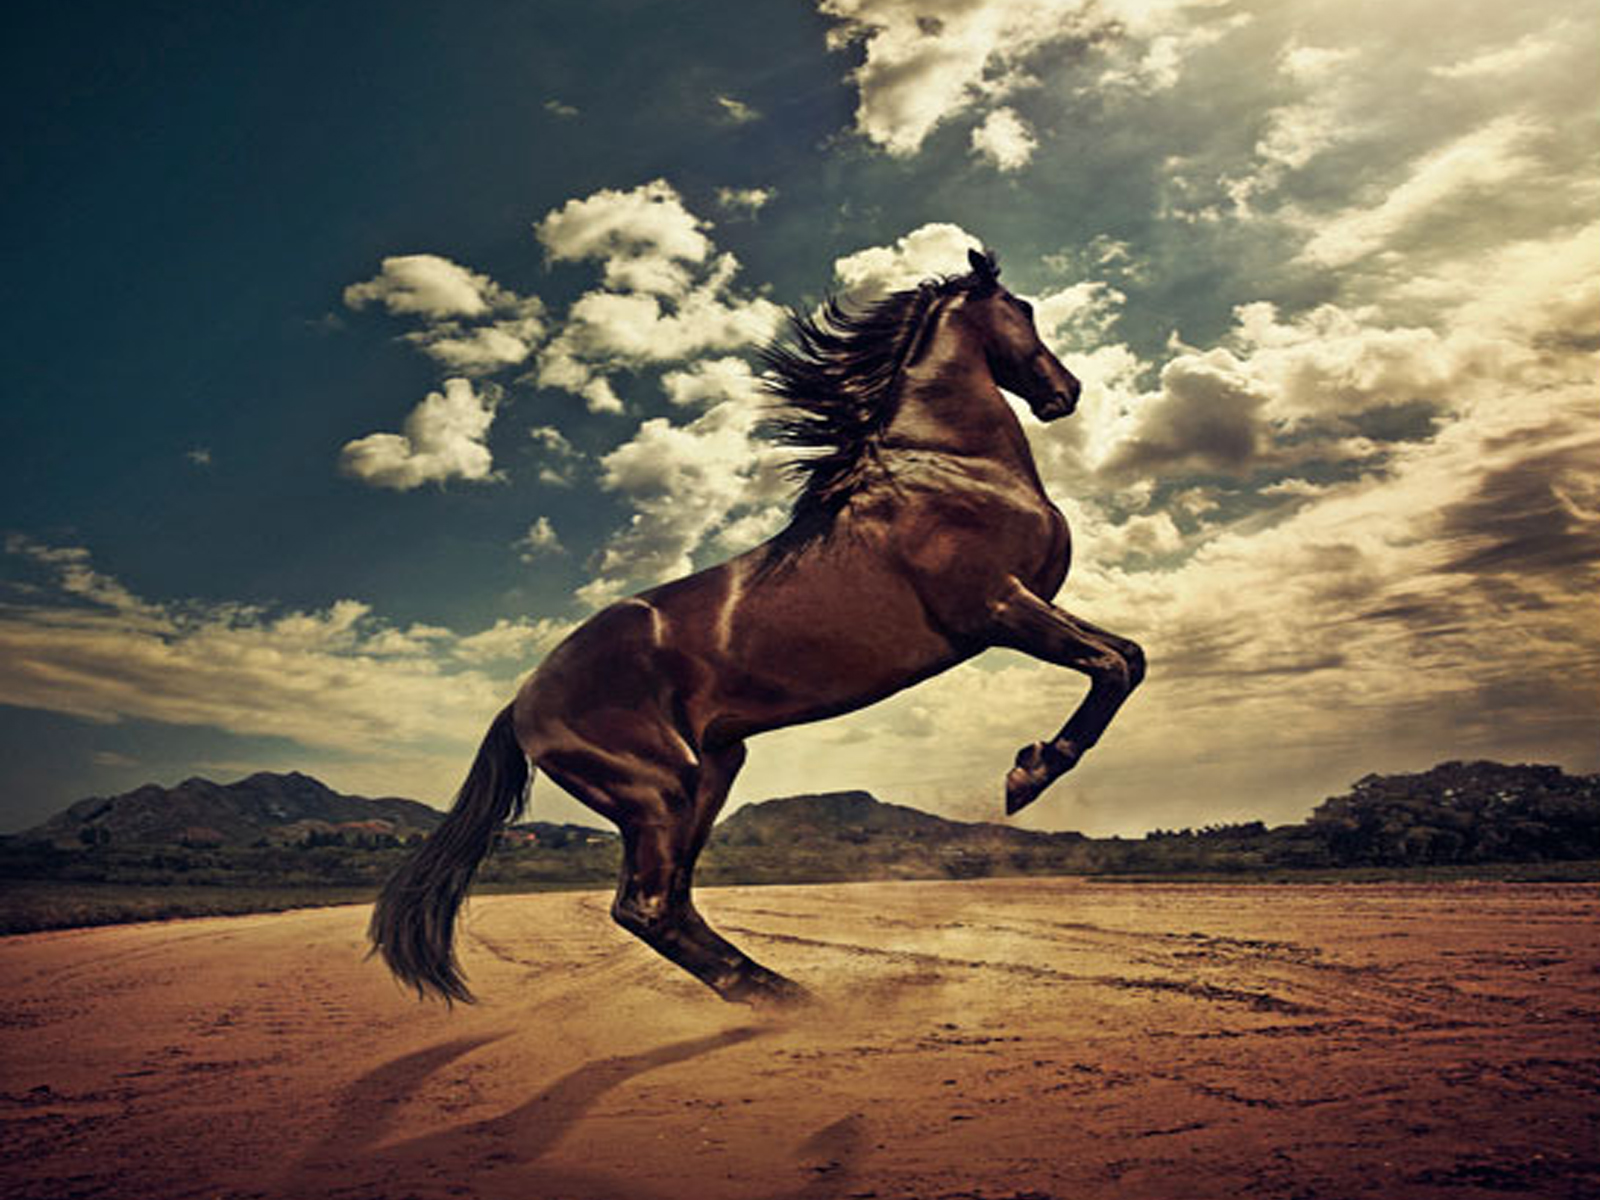 Cool Wallpaper Horse Nature - the-best-top-desktop-horse-wallpapers-25  Pic_71233.jpg